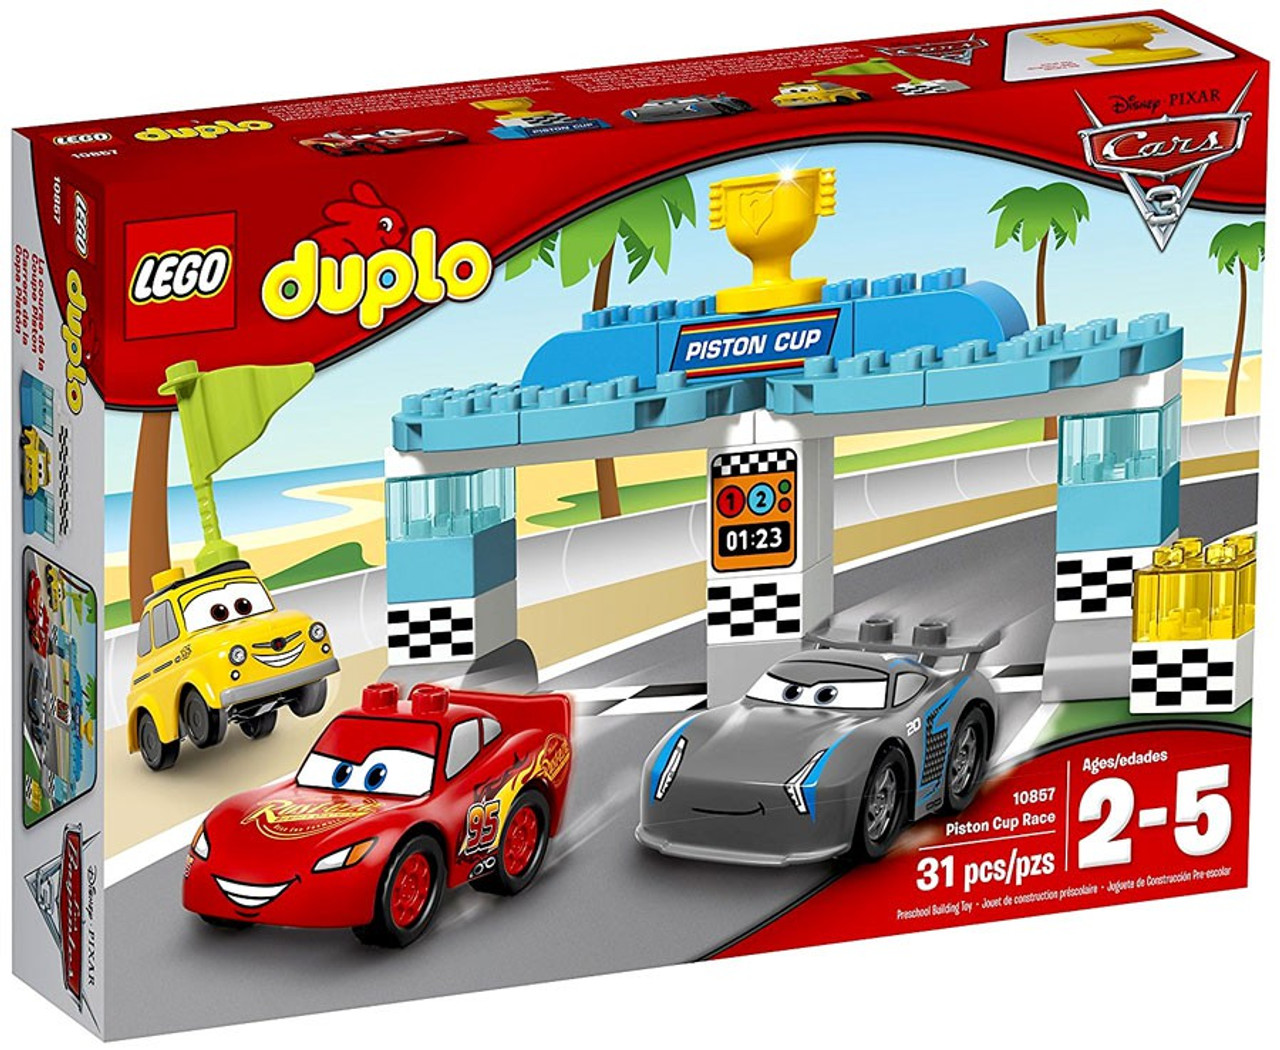 Lego Disney Pixar Cars Cars 3 Duplo Piston Cup Race Set 10857 Toywiz